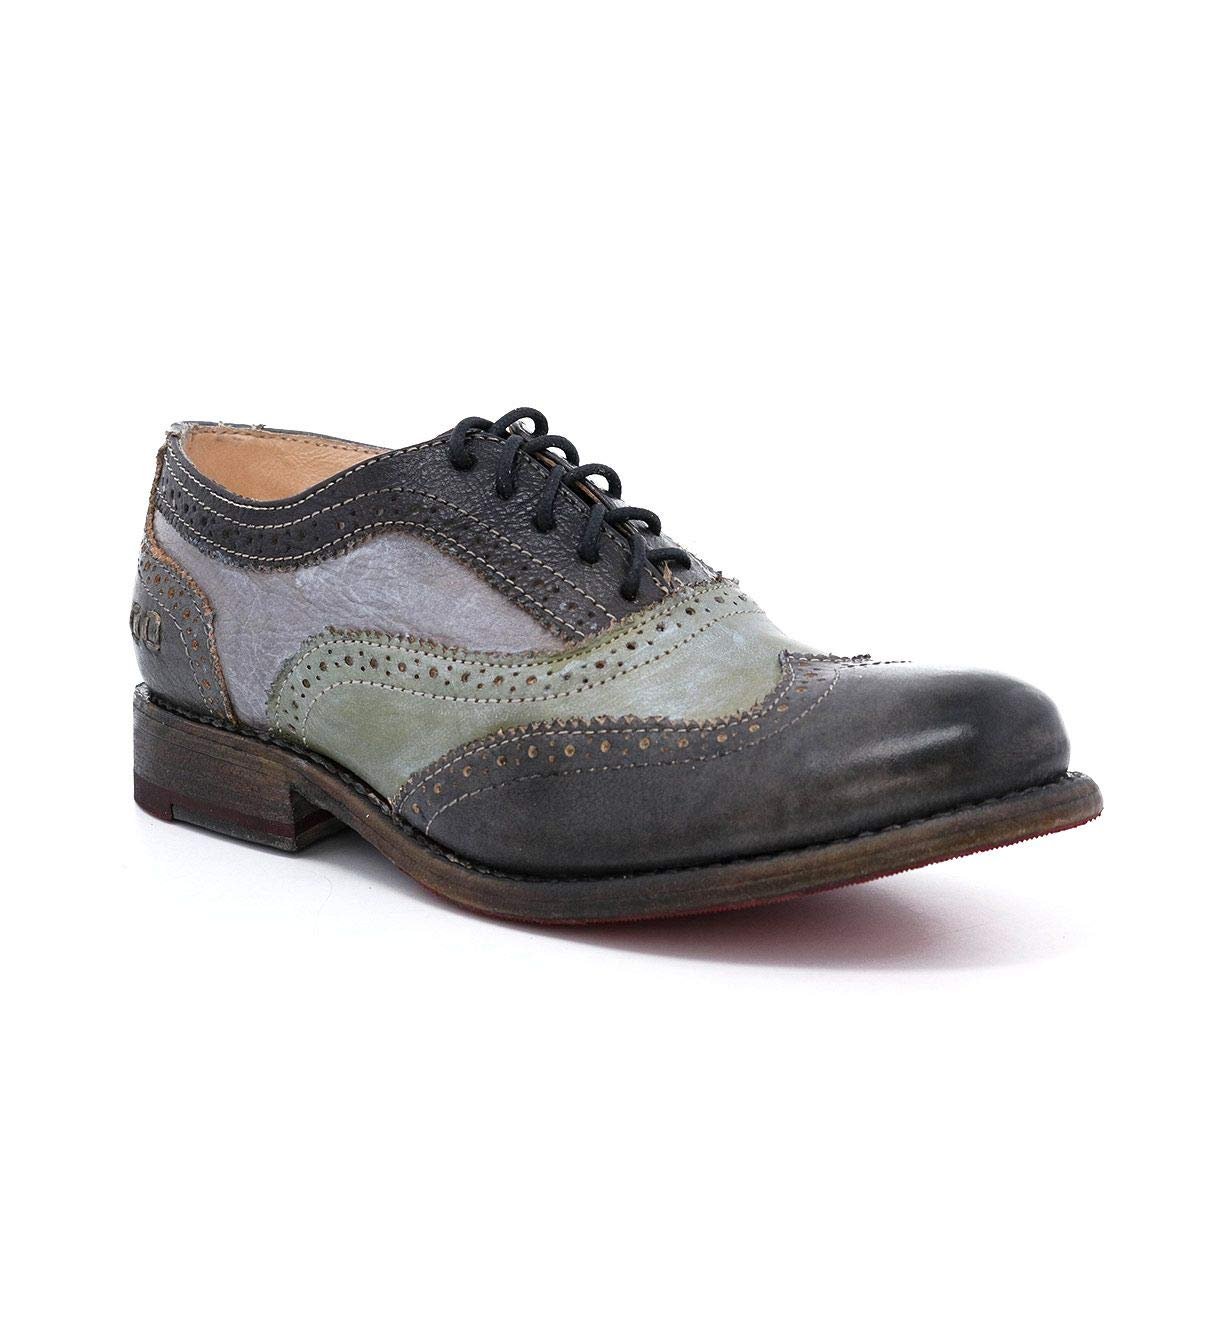 Bed|Stu Women's Lita Leather Oxford (6.5 M US, Graphito Sage Rustic Metal./Grey Silver Metal.)